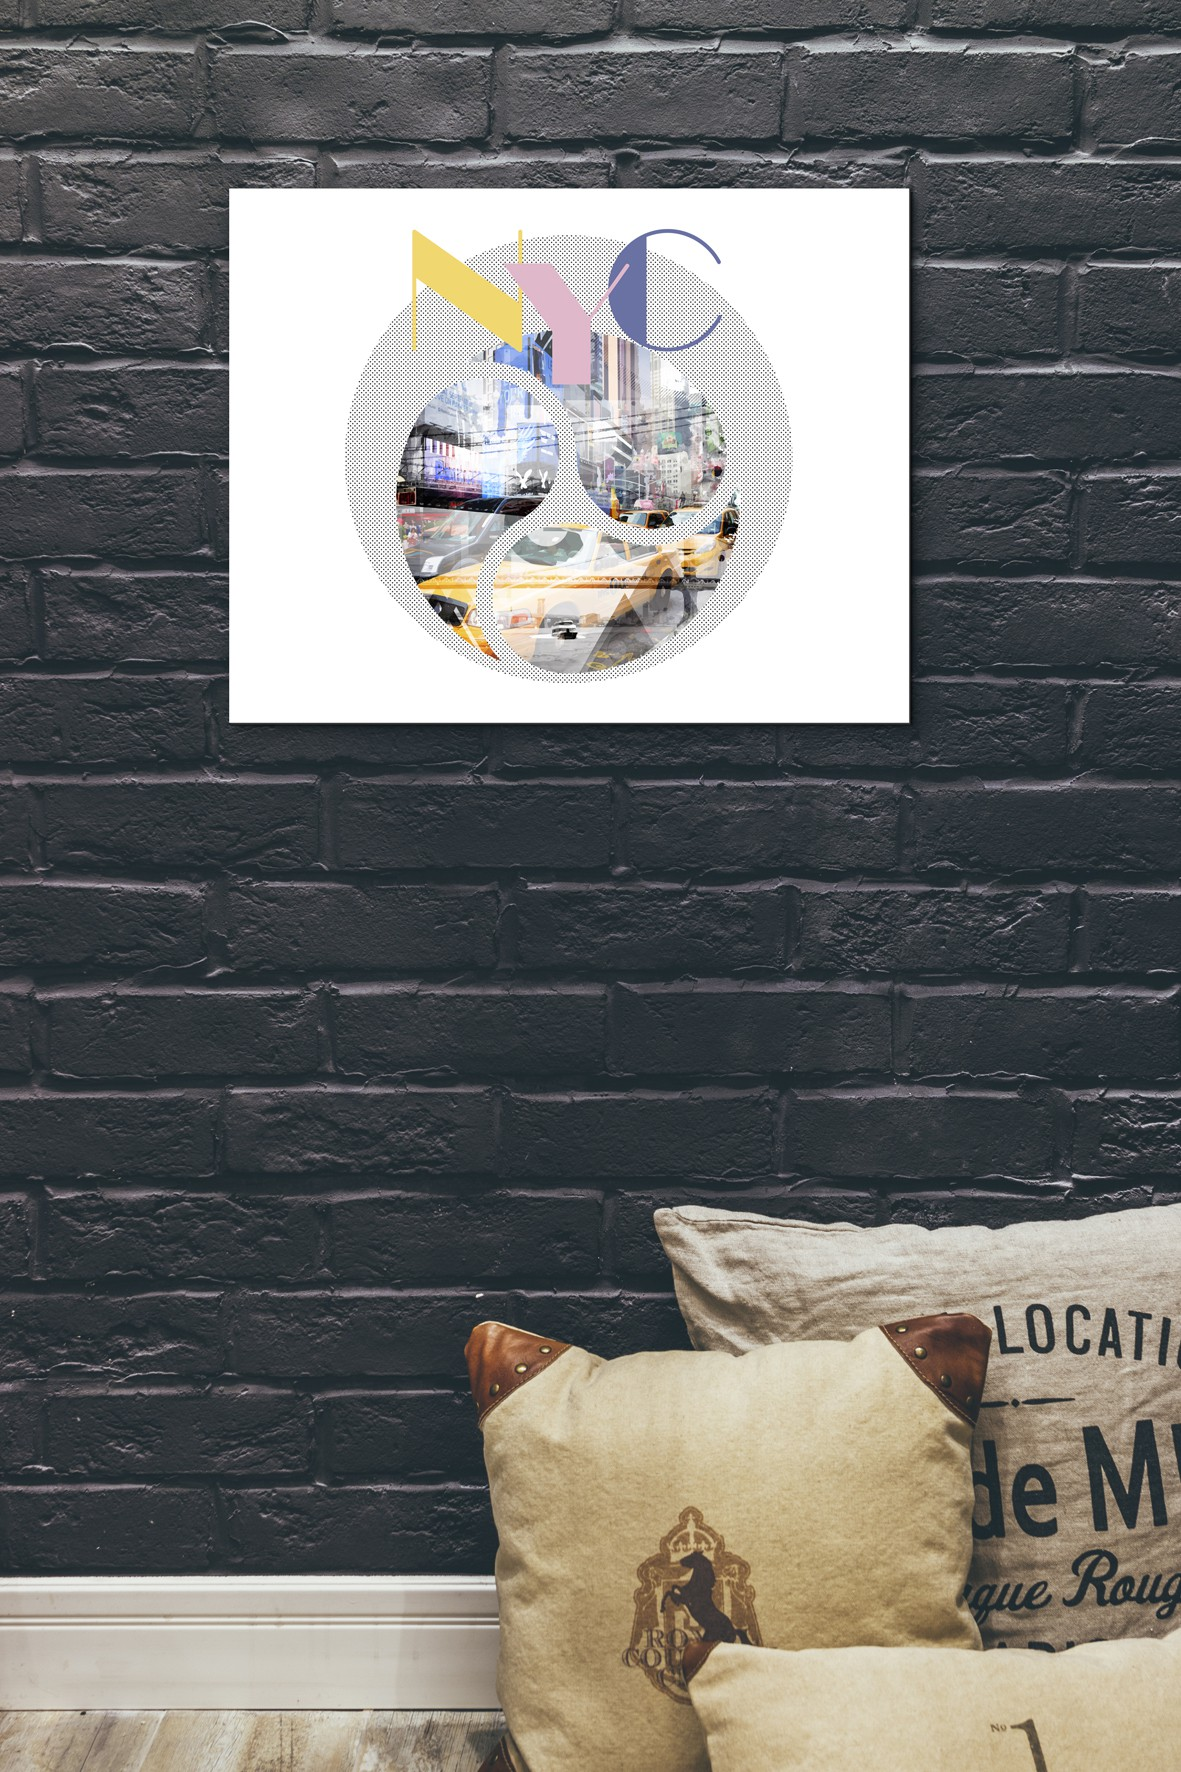 Trendy Design New York City Geometric Mix No 1 - Pixels.com Onlineshop